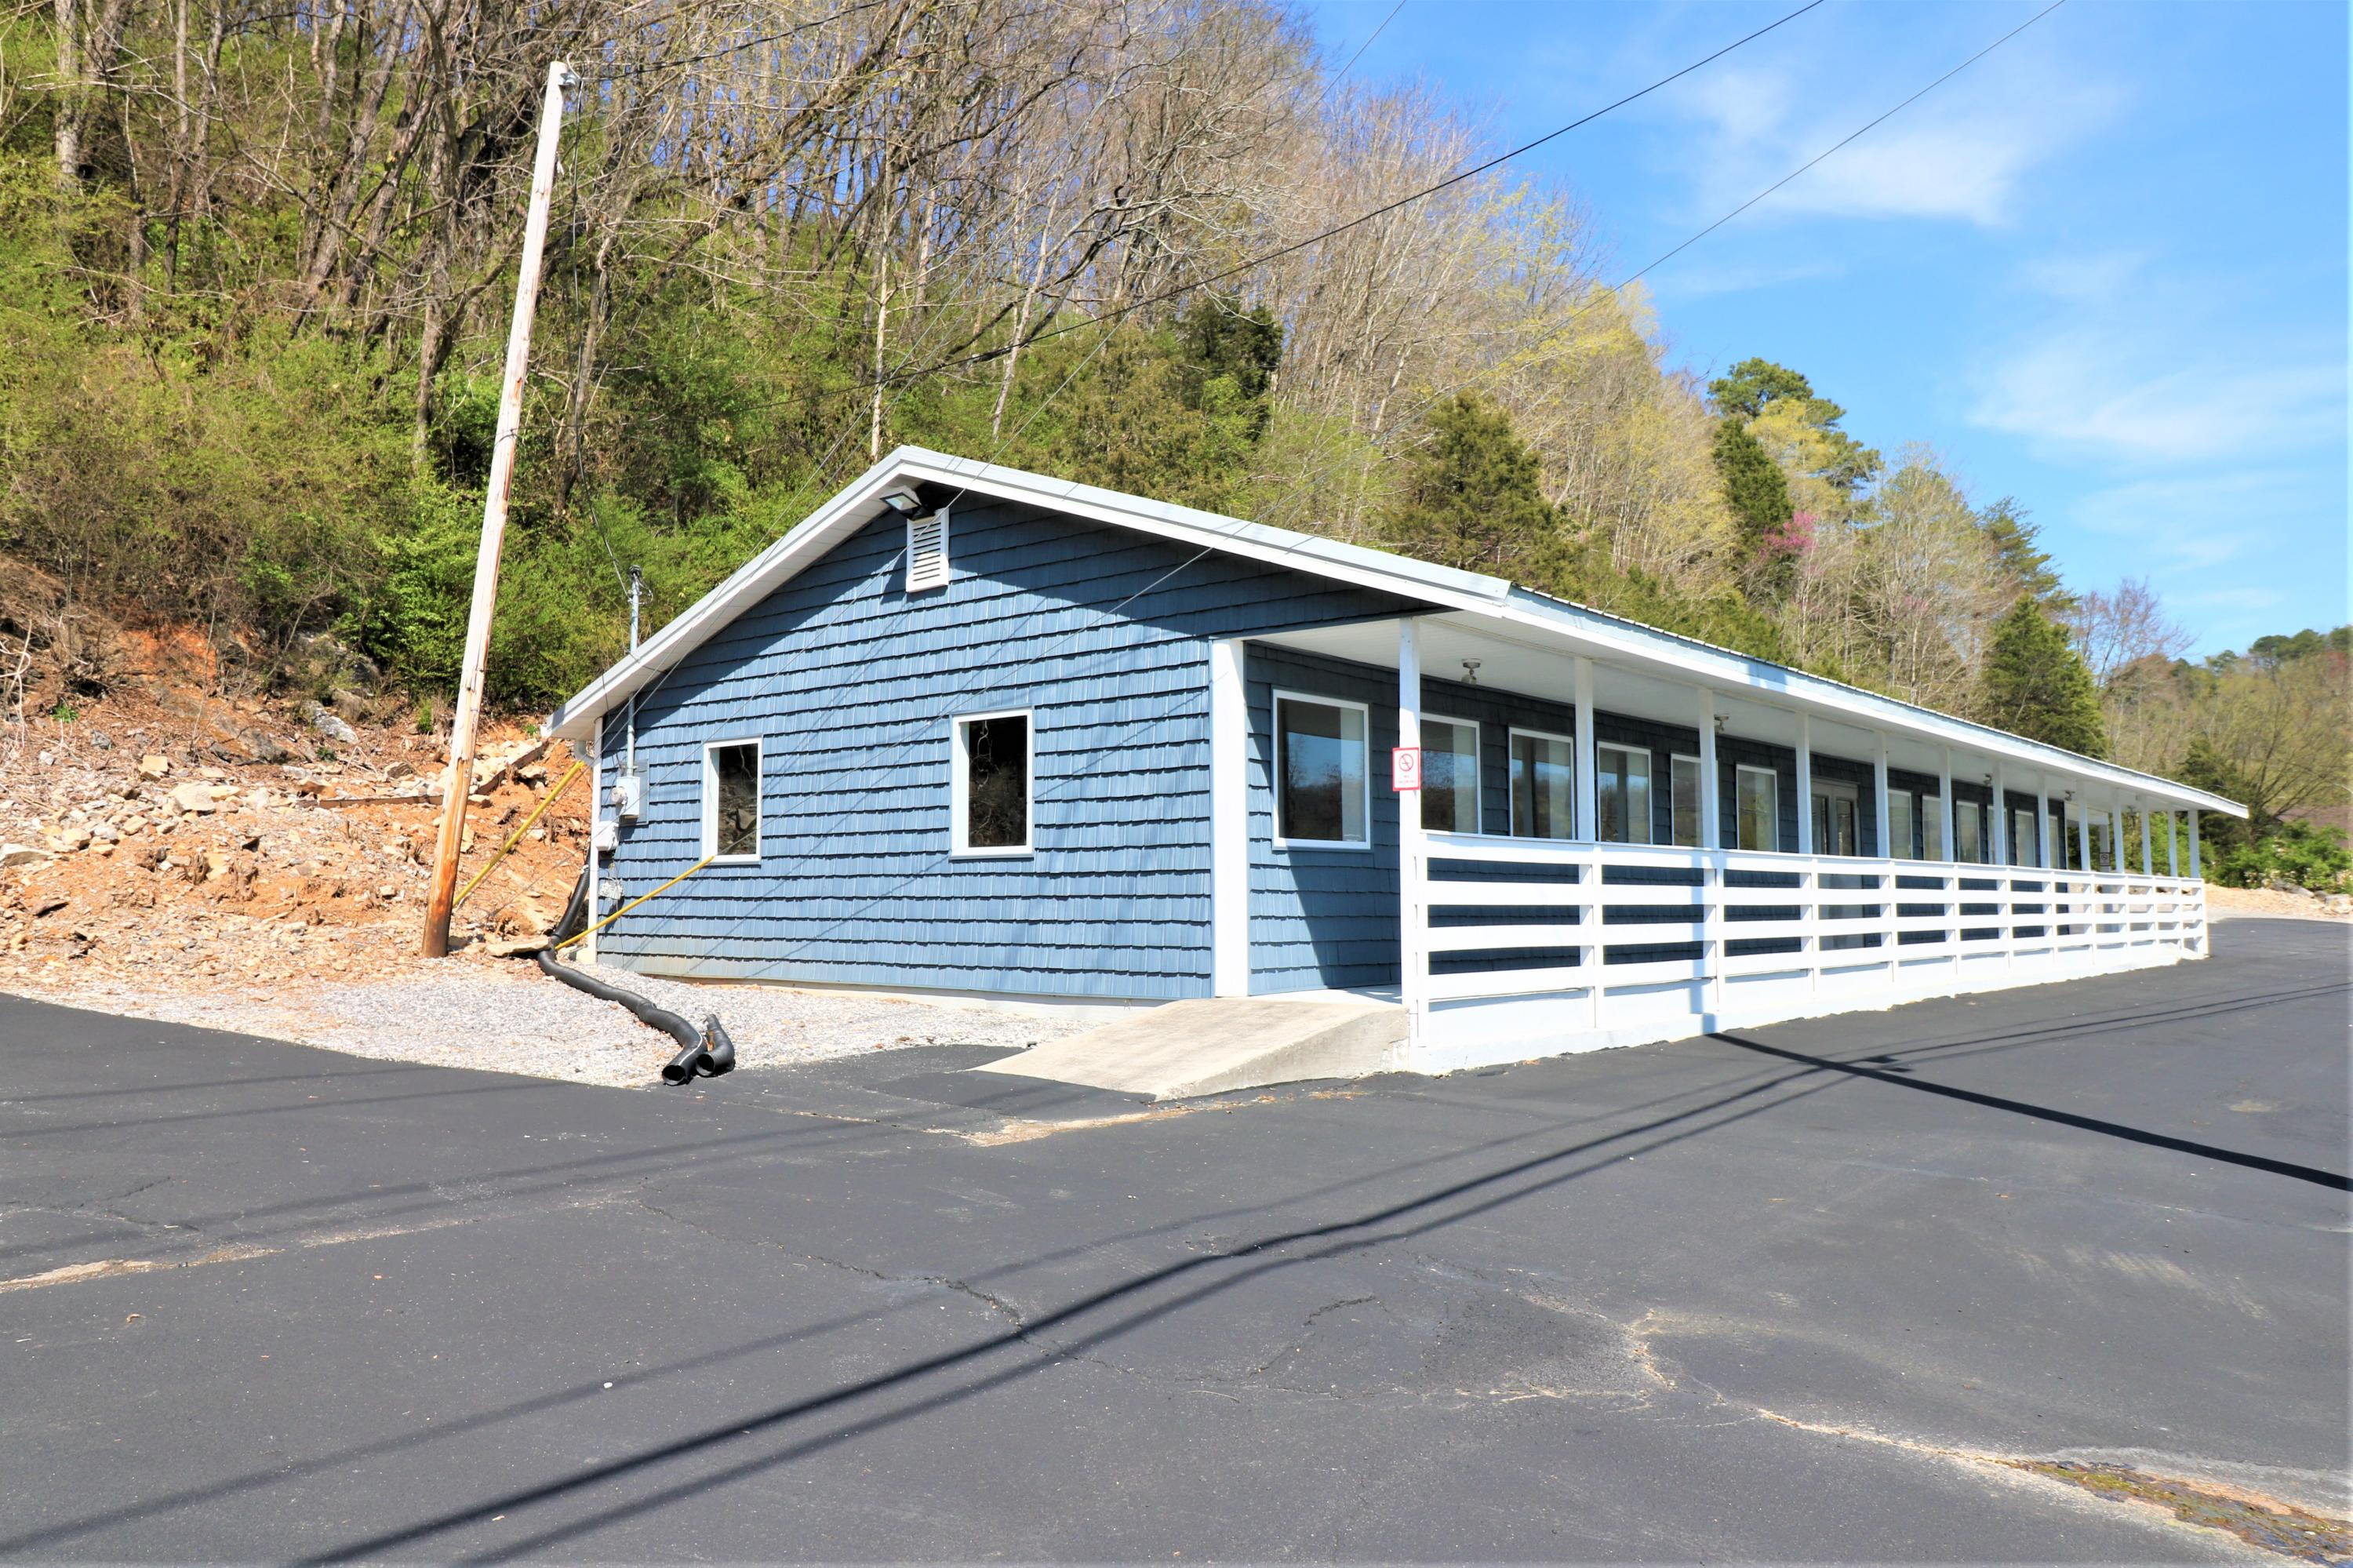 20190405164047988846000000-o Clinton anderson county homes for sale